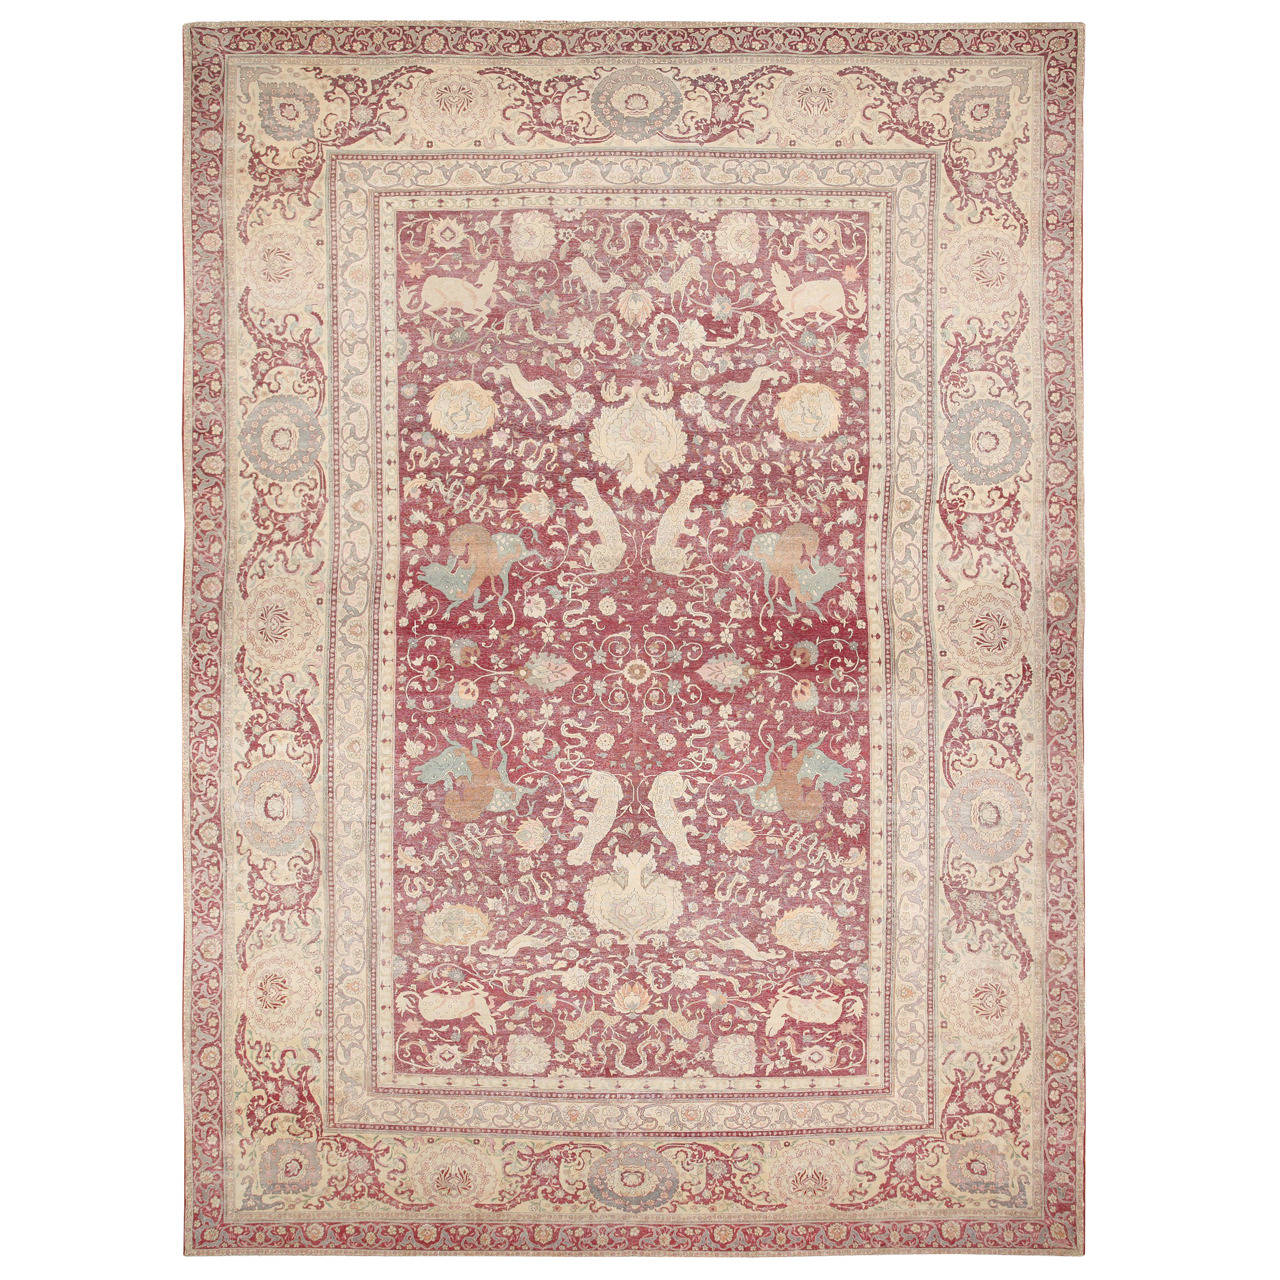 Elegant Antique Oversized Turkish Hereke Rug